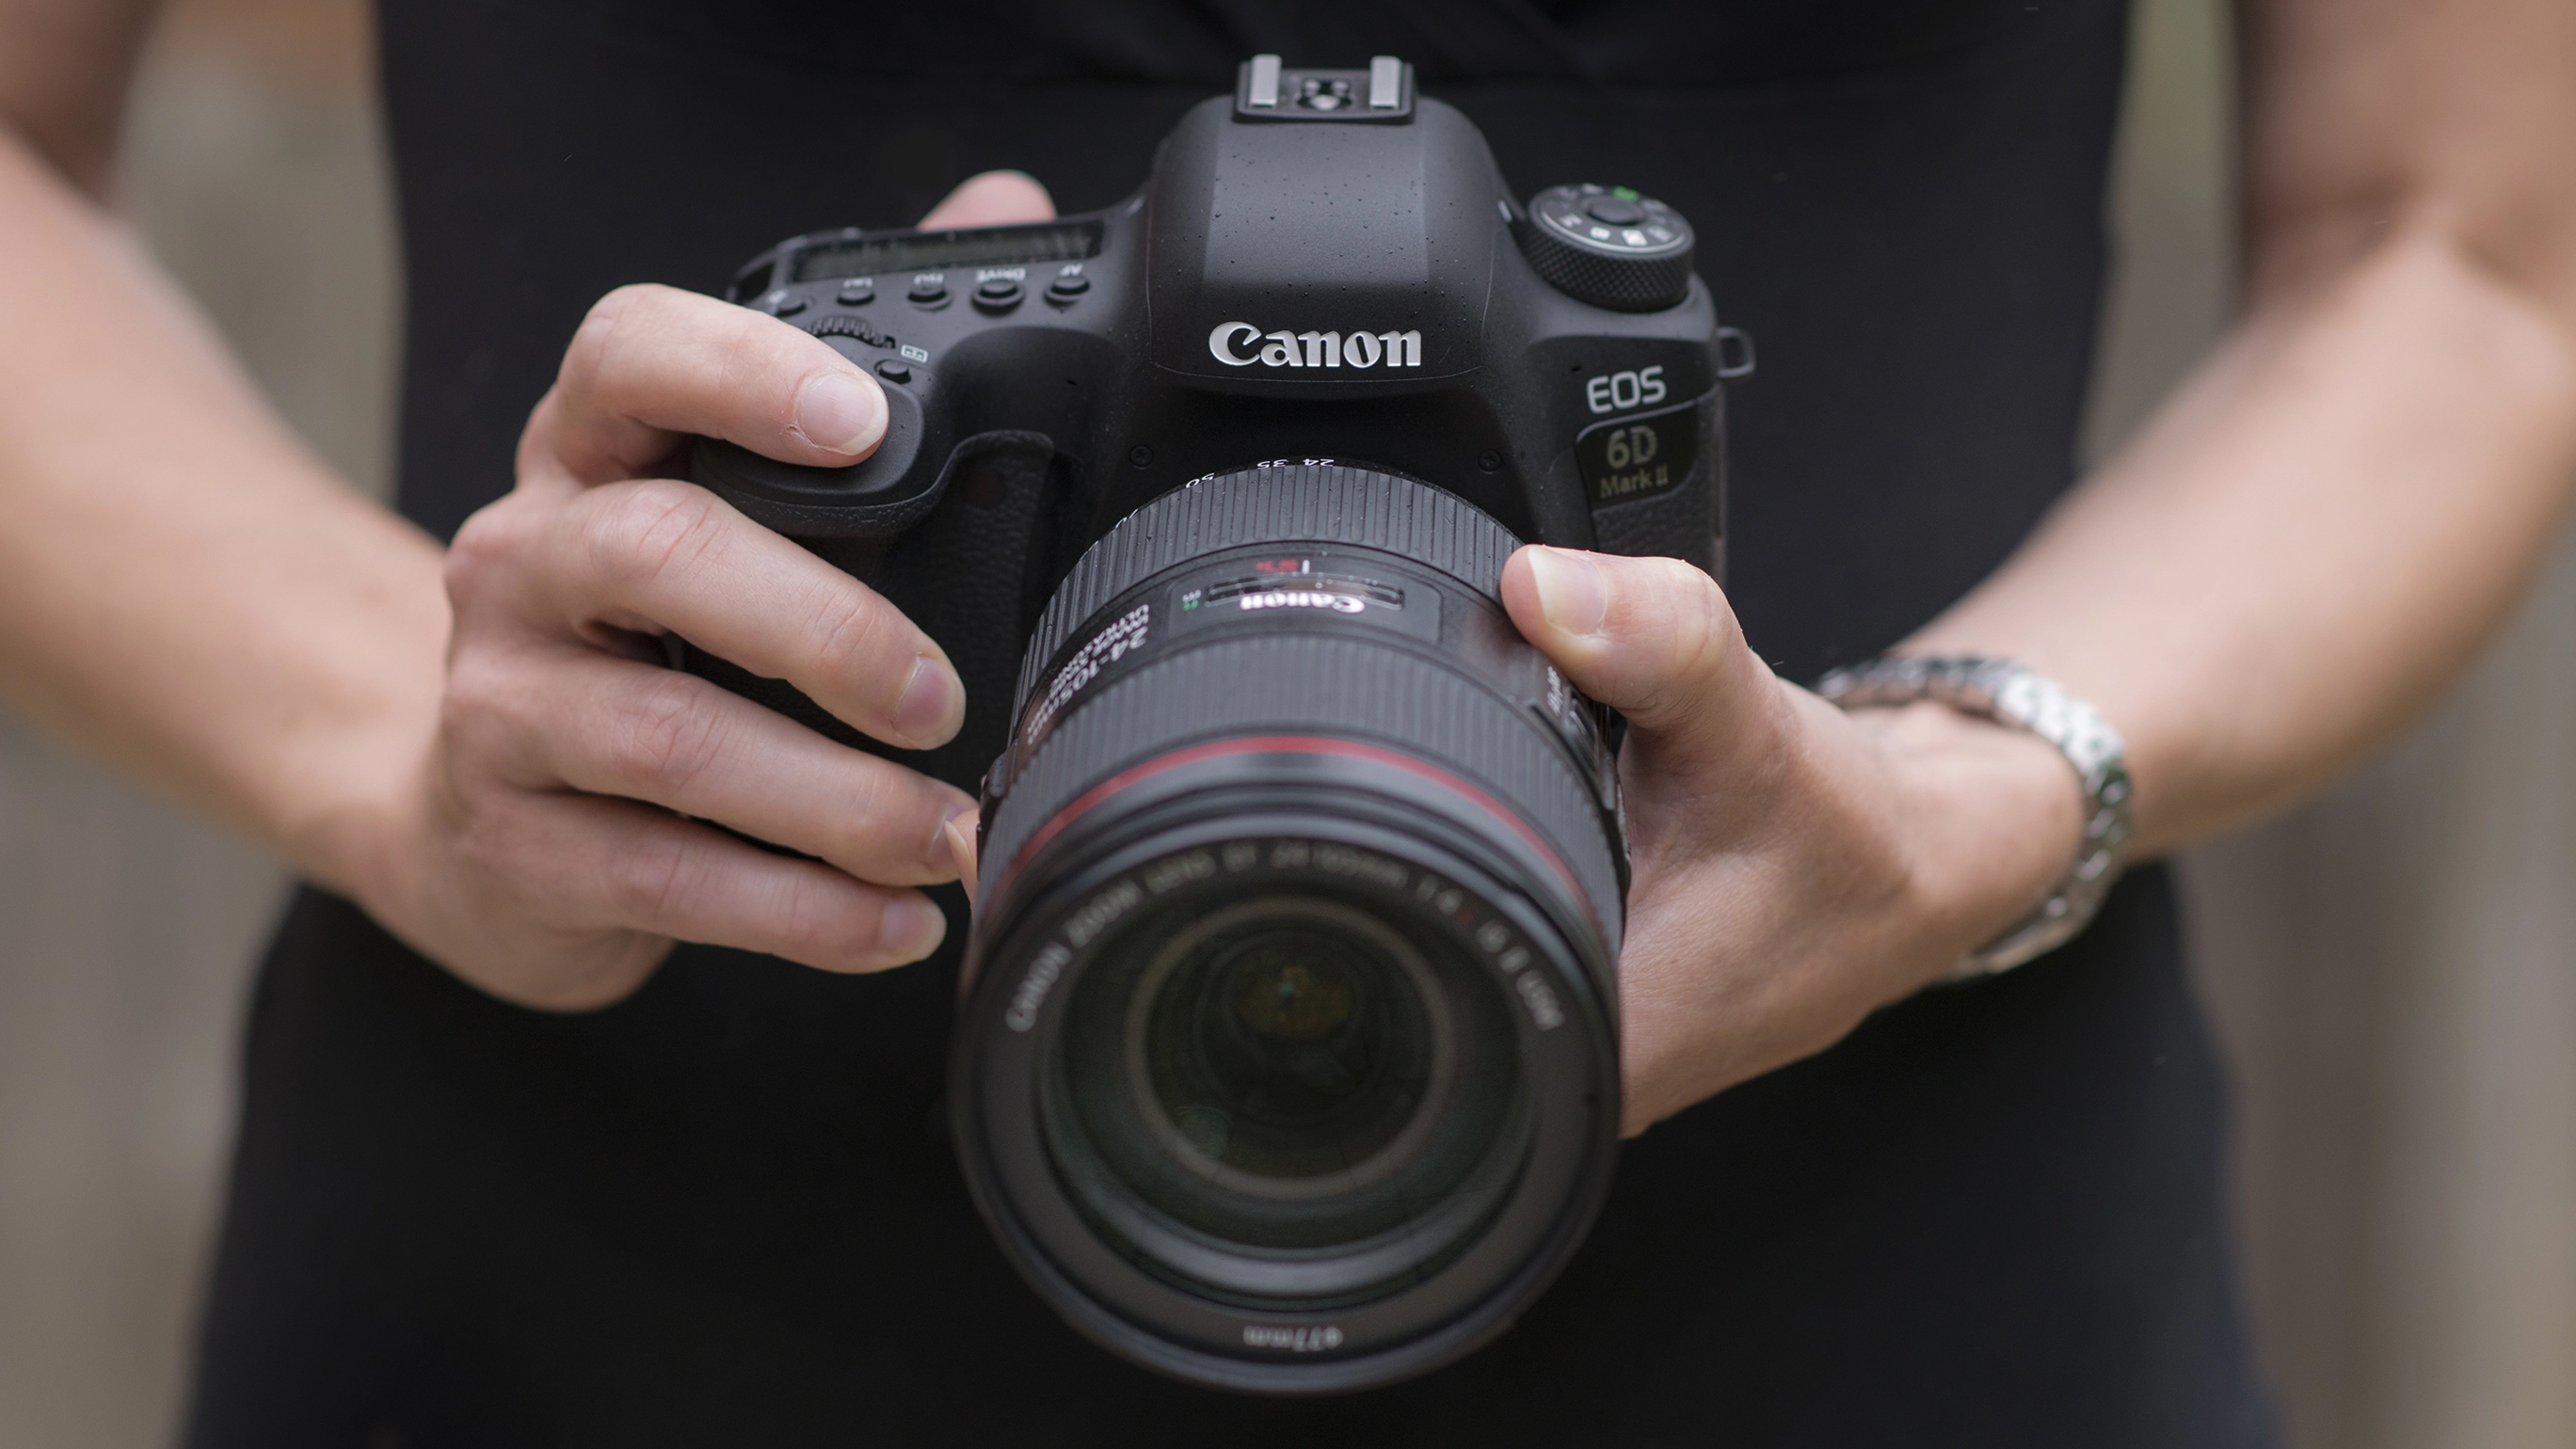 The Best Dslr Camera 2020 10 Best Dslr Cameras Money Can Buy In 2020 Techradar While dslr is a term that's become synonymous with digital cameras, it is just one type of digital camera. the best dslr camera 2020 10 best dslr